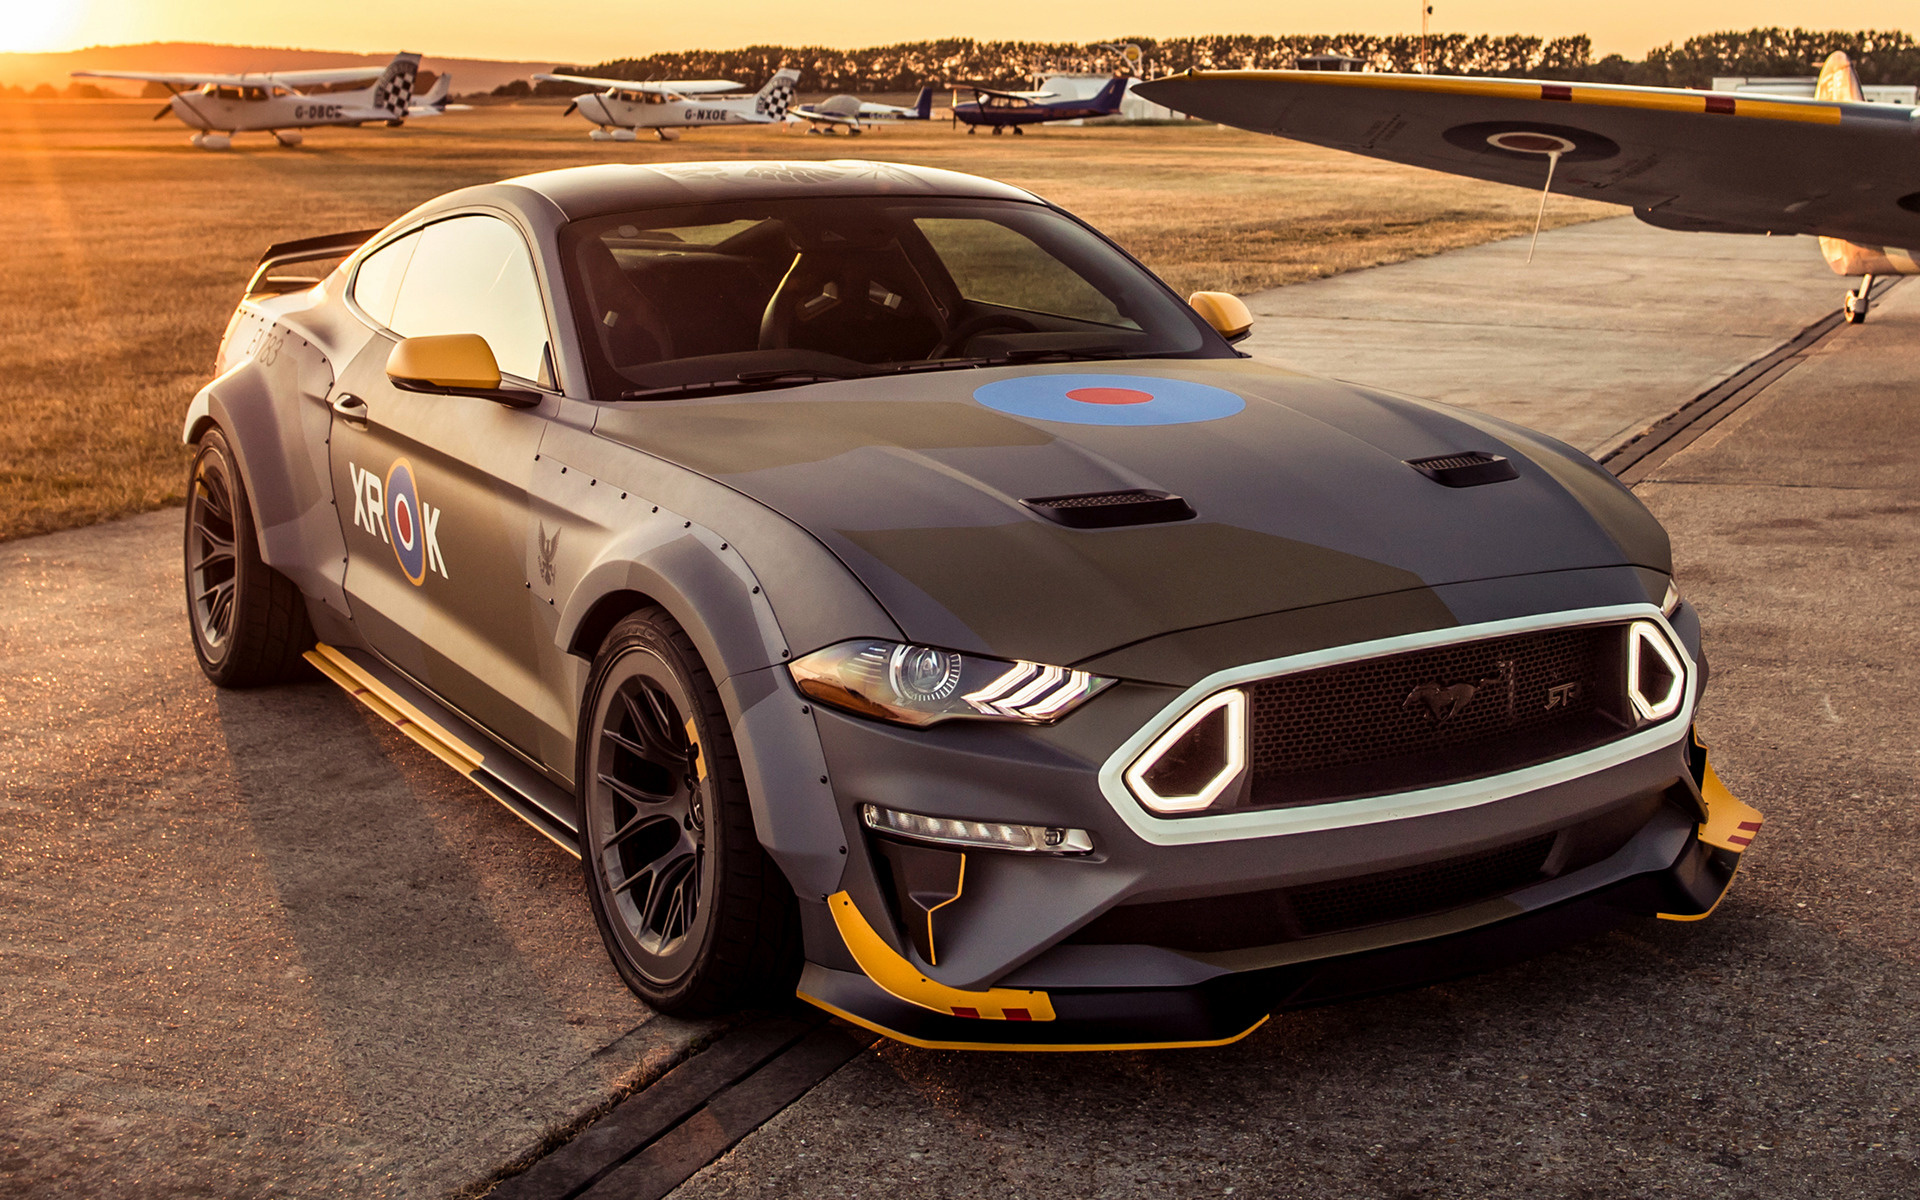 2018 Ford Eagle Squadron Mustang Gt Wallpapers And Hd